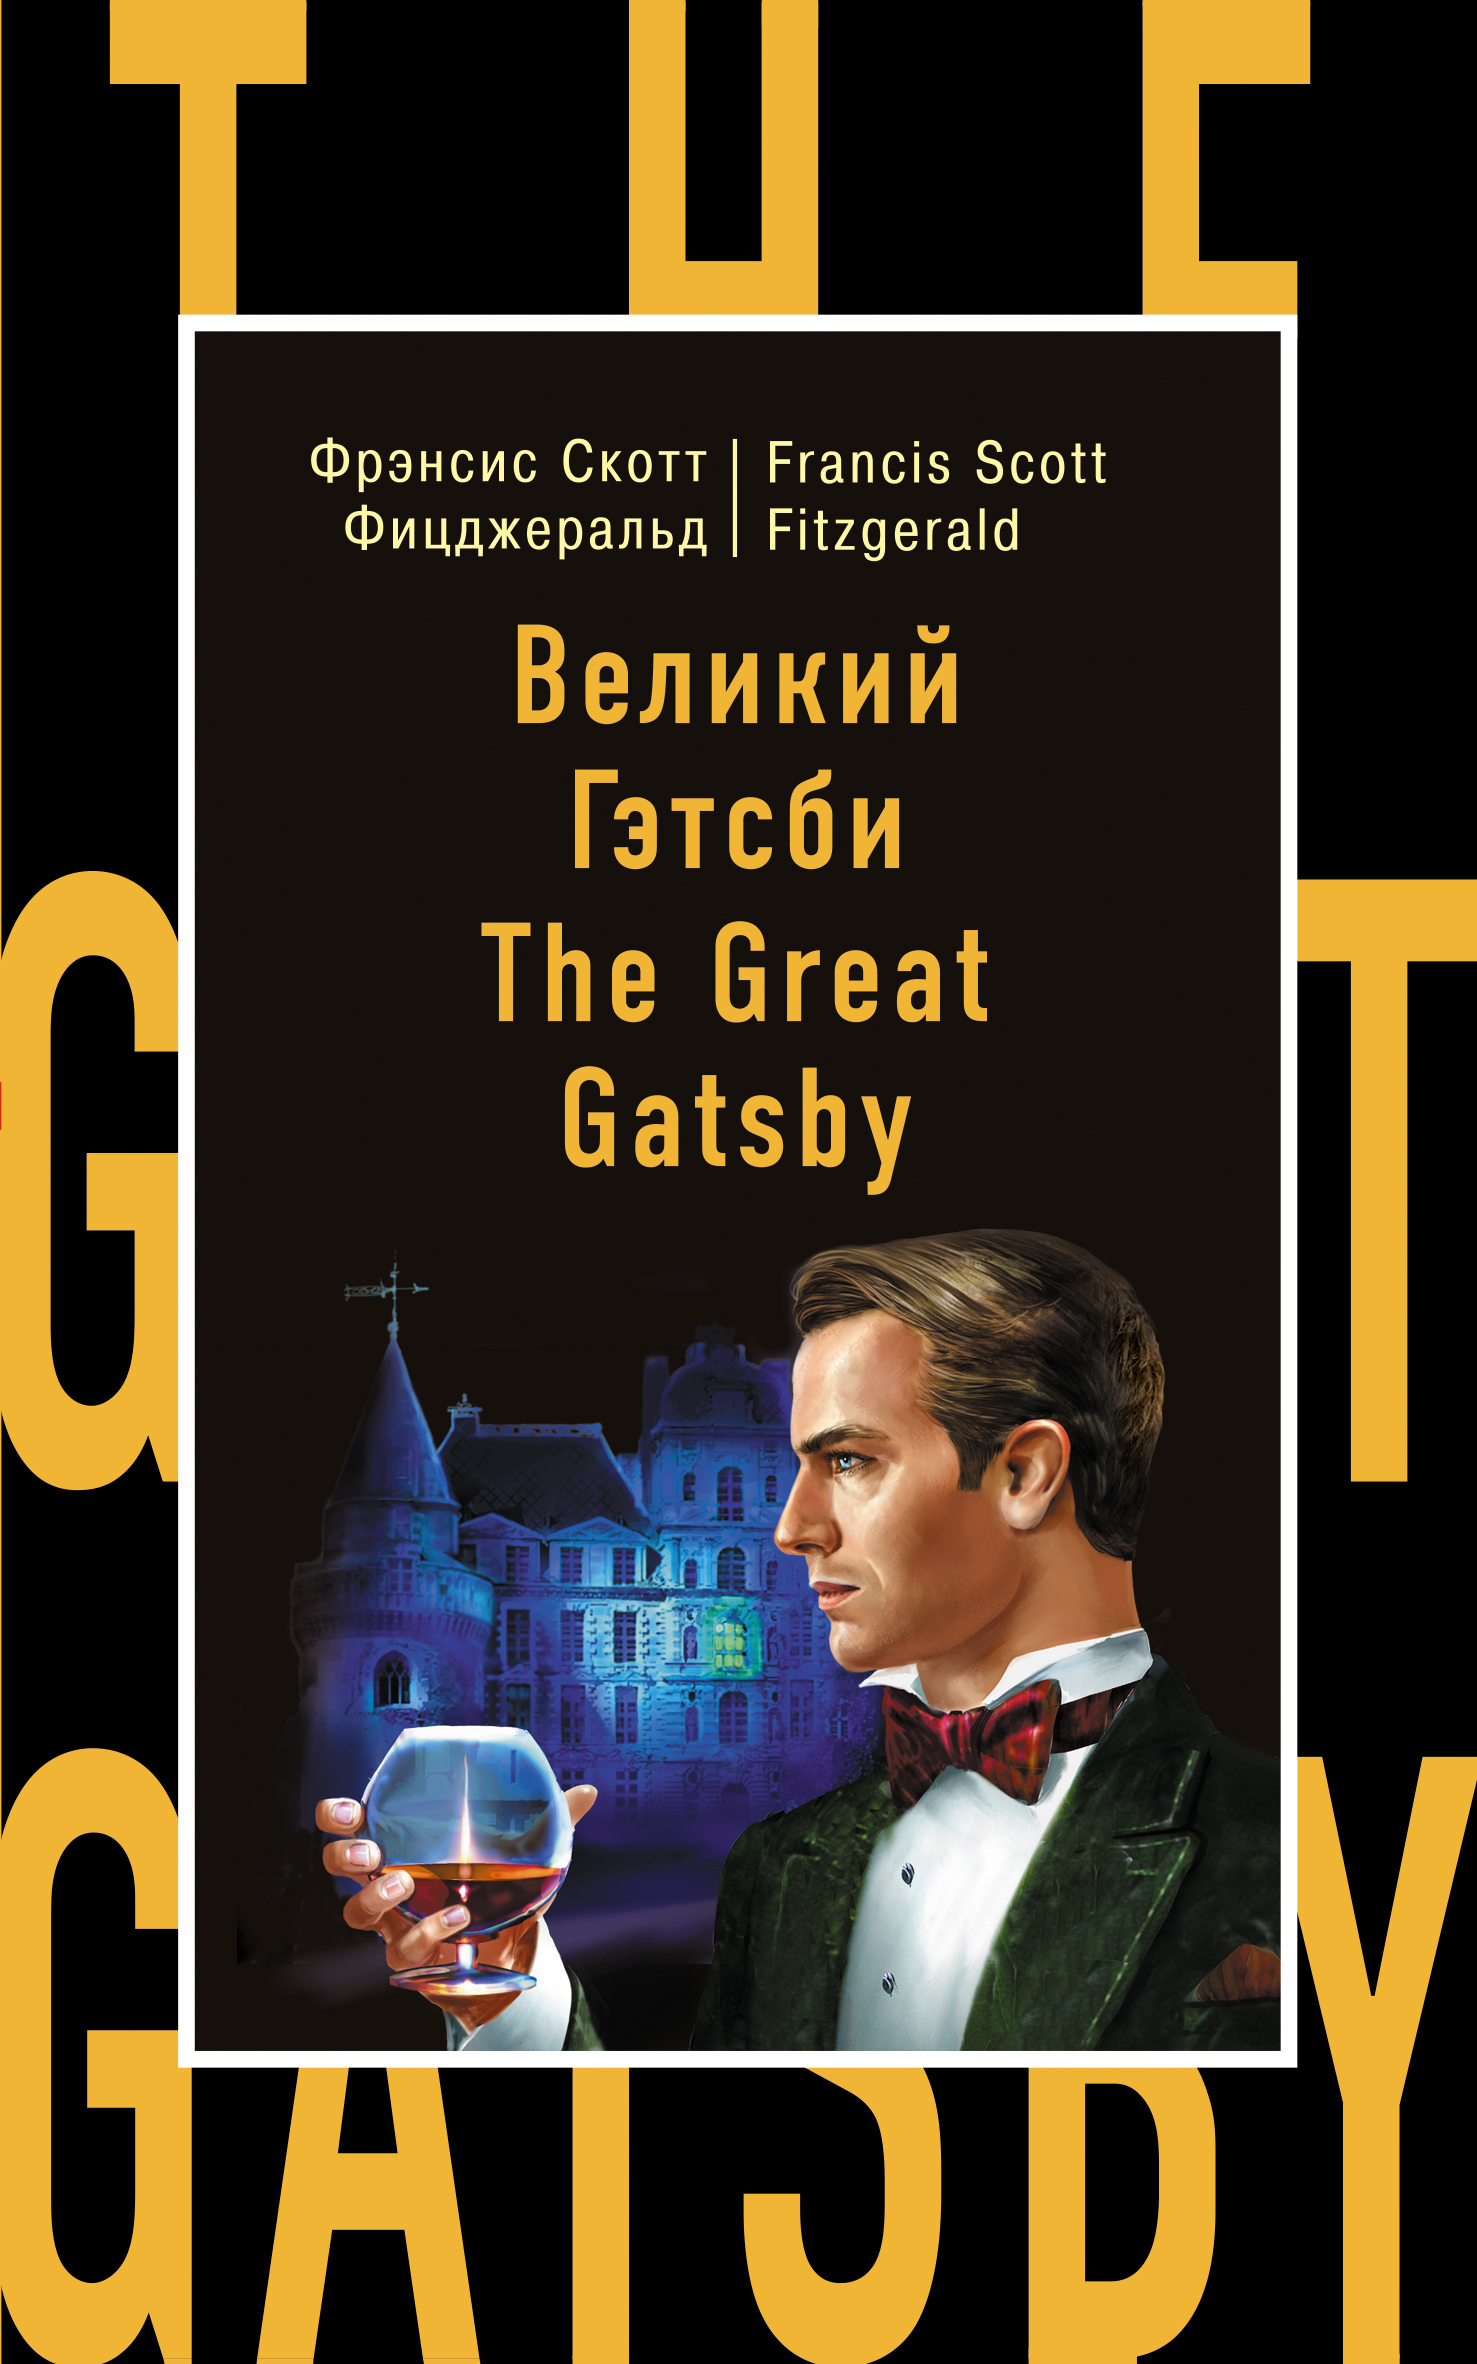 Фицджеральд Фрэнсис Скотт Великий Гэтсби = The Great Gatsby - страница 0